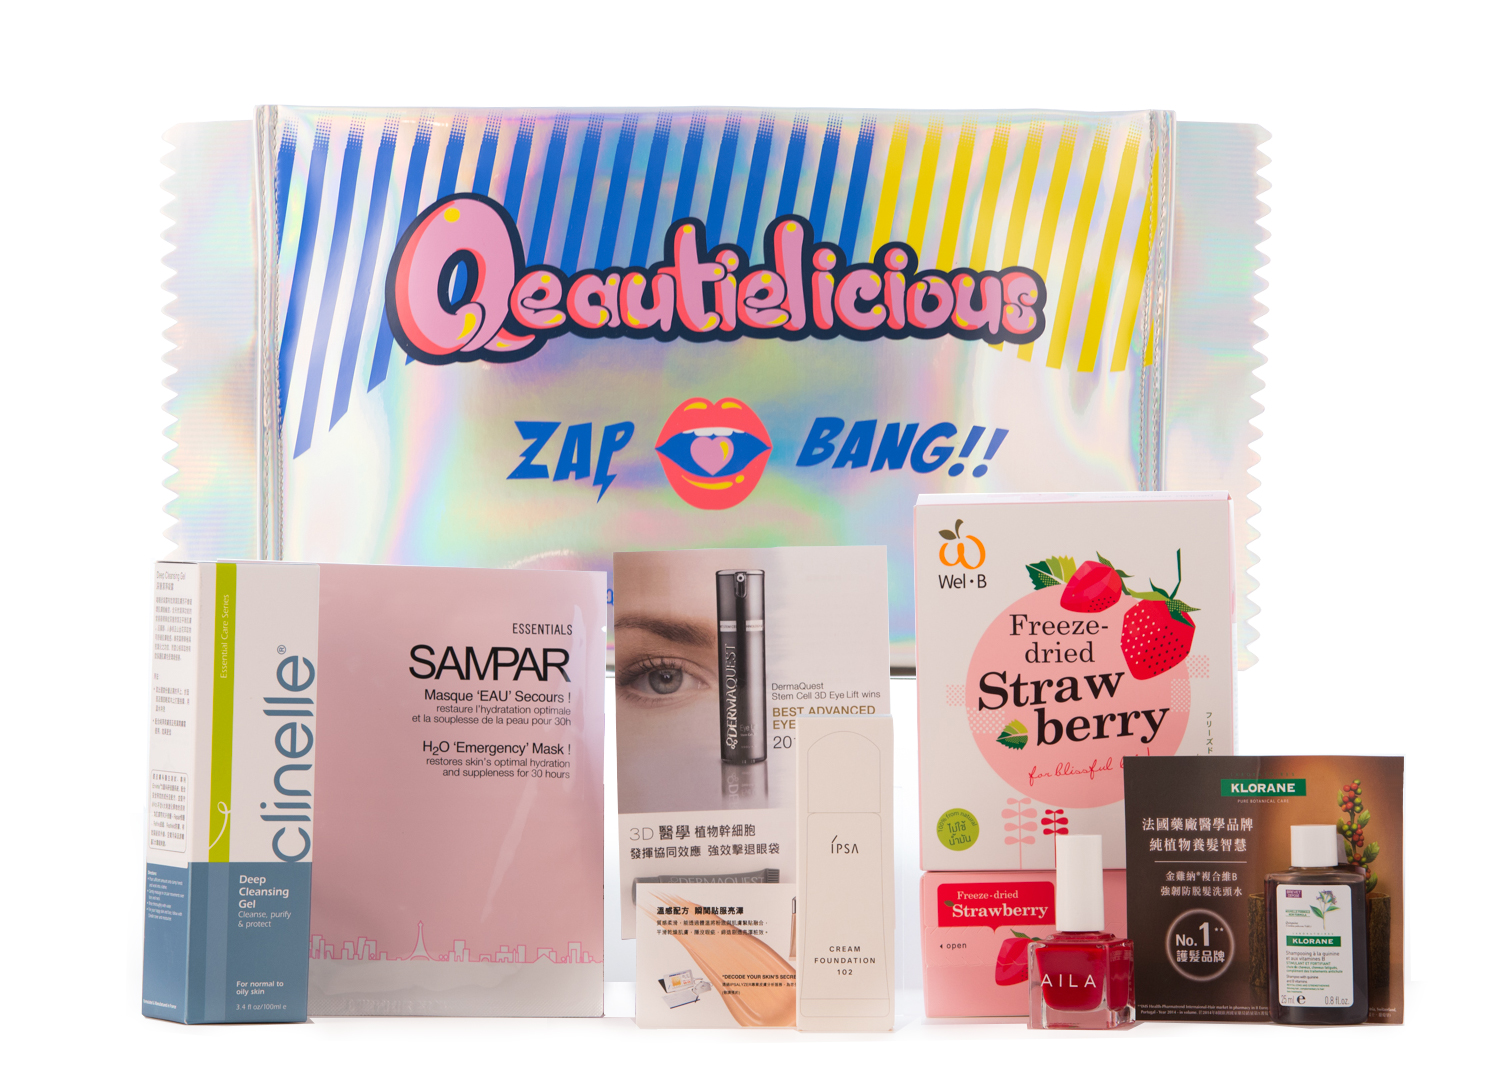 http://www.qeautybox.com/media/catalog/product/p/r/product_a_0517.jpg